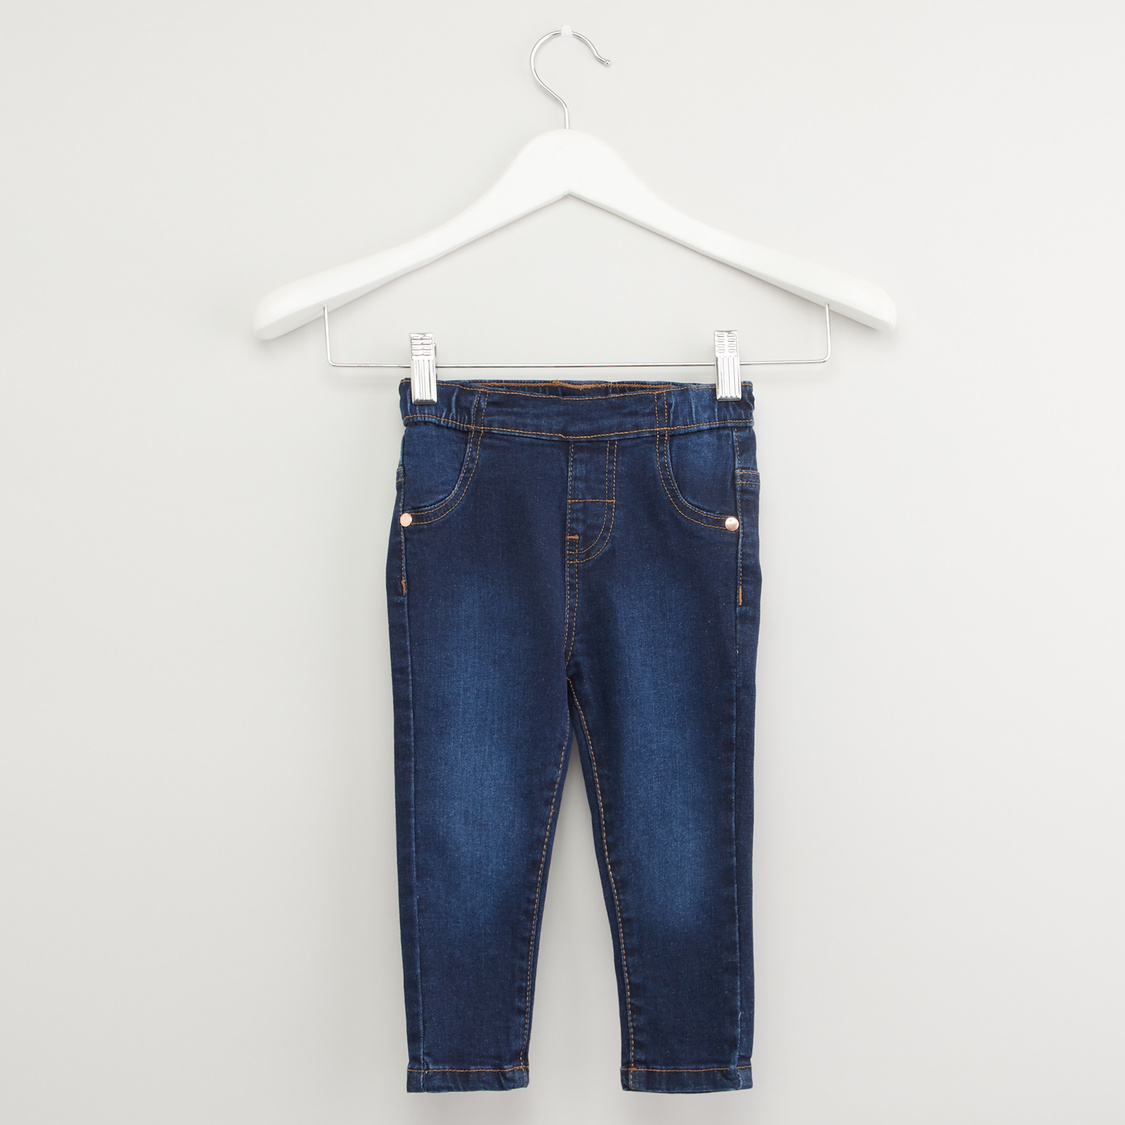 Textured Jeggings with Pocket Detail and Elasticised Waistband